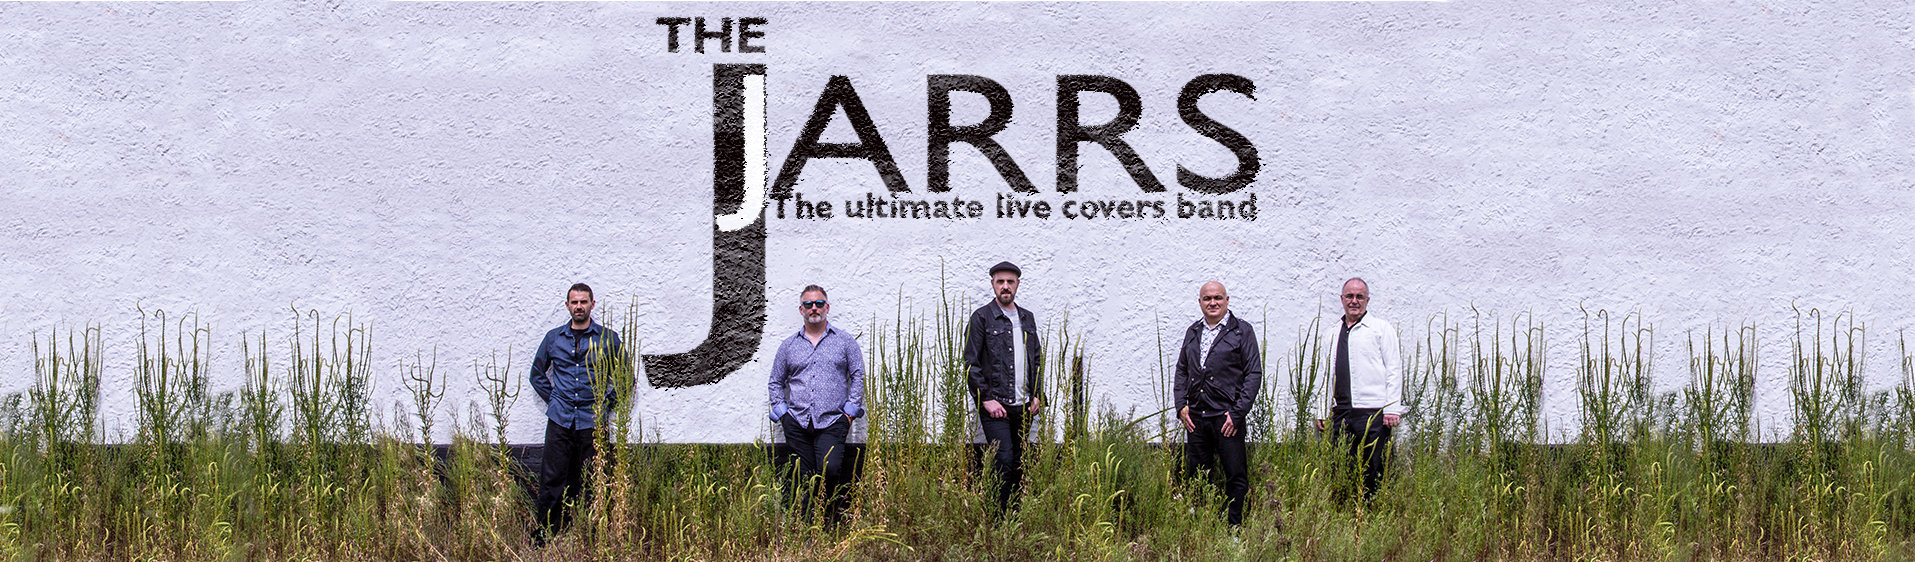 The Jjarrs - The Ultimate Live Wedding Band in Cambridgeshire